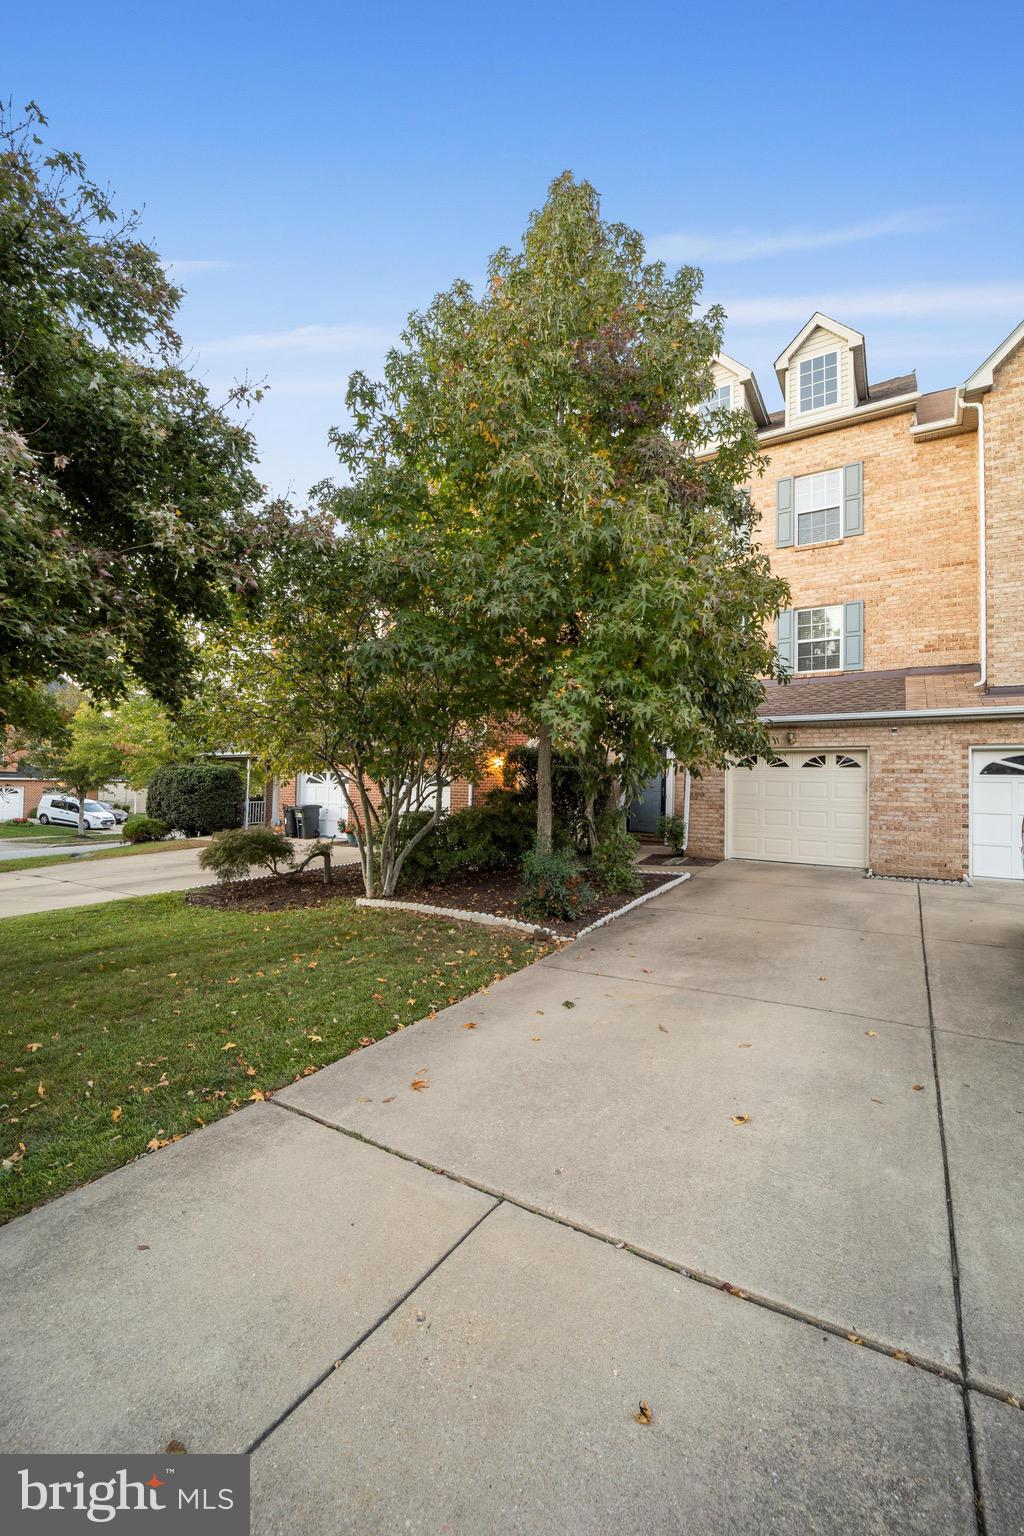 Your new home is an exceptionally well-maintained three-story single-family townhome. Your home is l